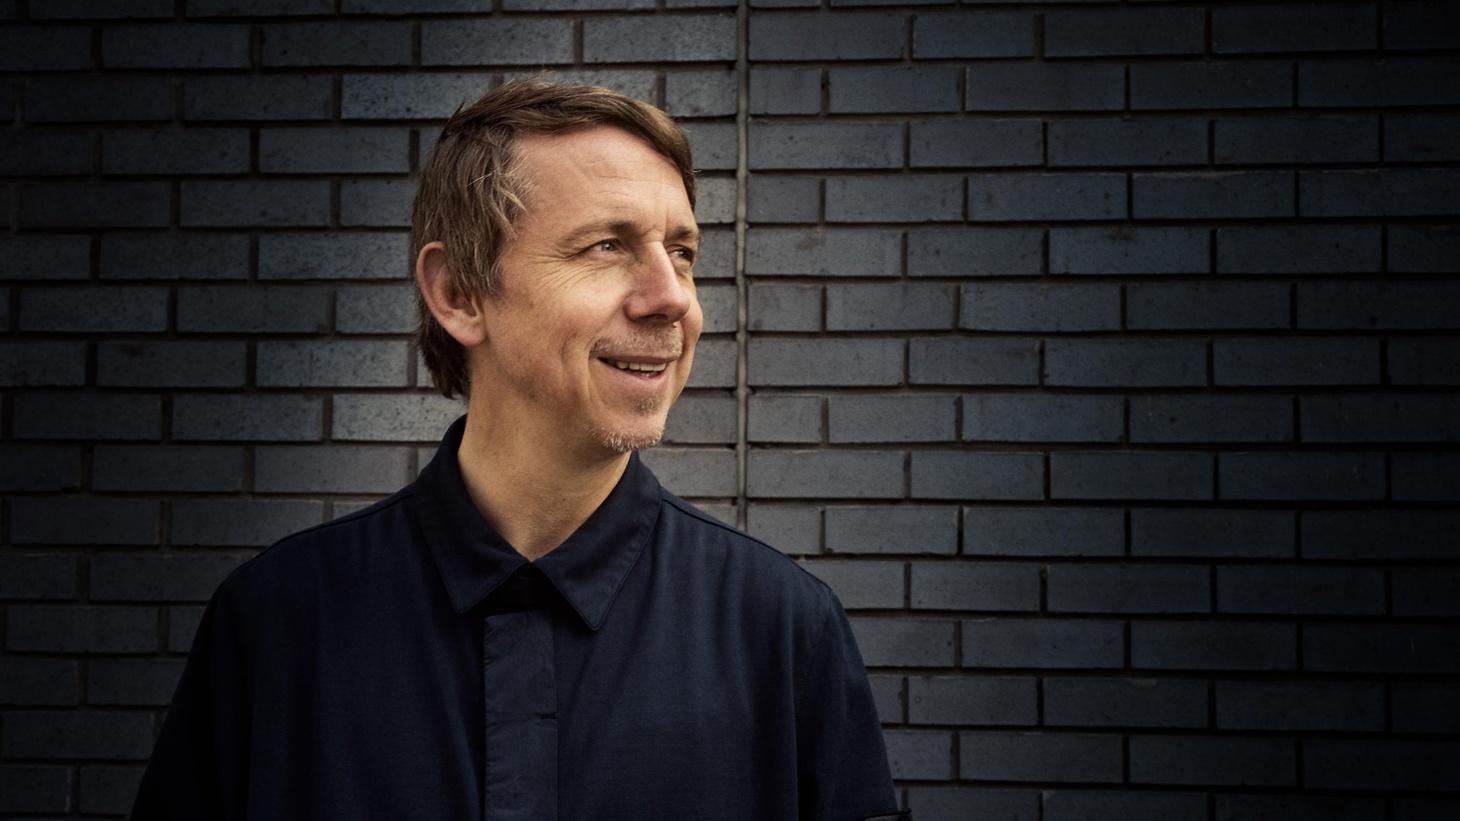 In the 10 o'clock hour, BBC host and DJ Gilles Peterson returns, armed with his latest discoveries and to premiere one of his own unreleased tracks.